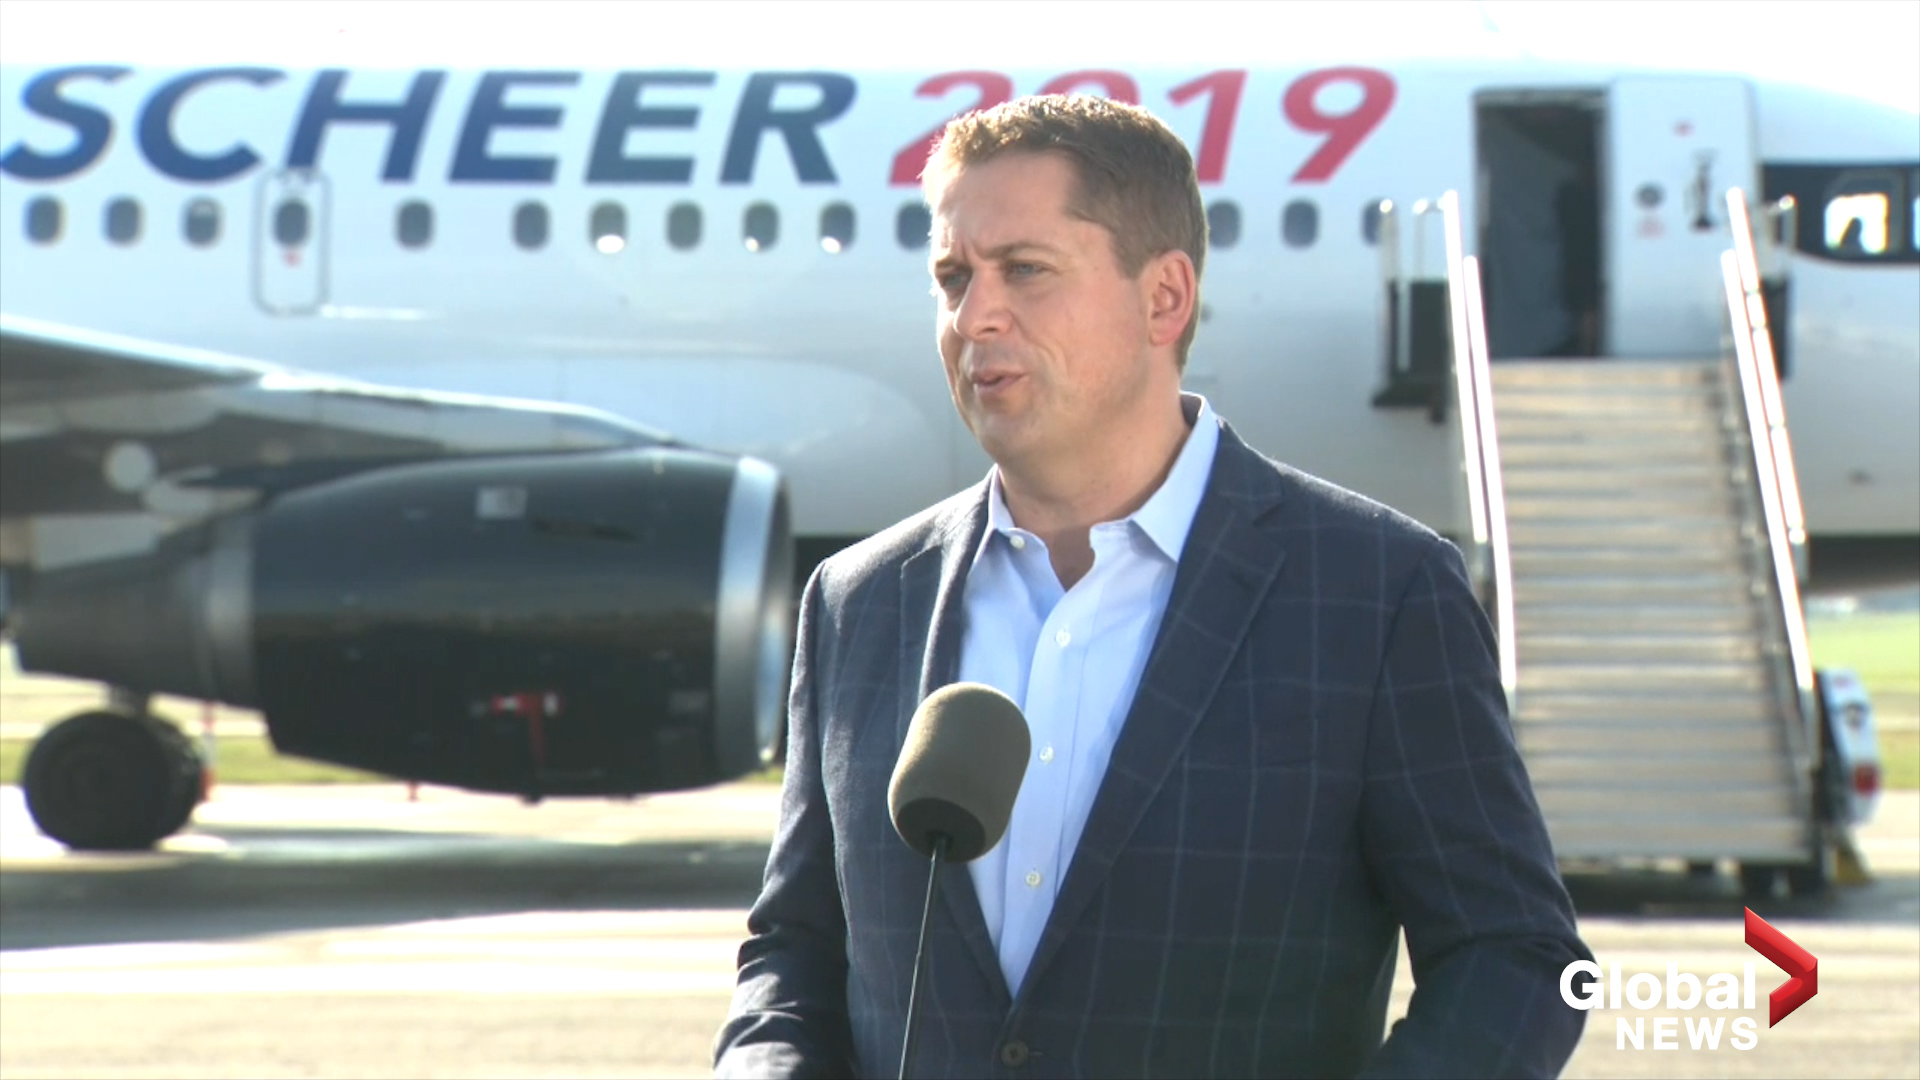 Scheer talks cabinet confidentiality, Quebec's Bill 21 as federal election campaign begins